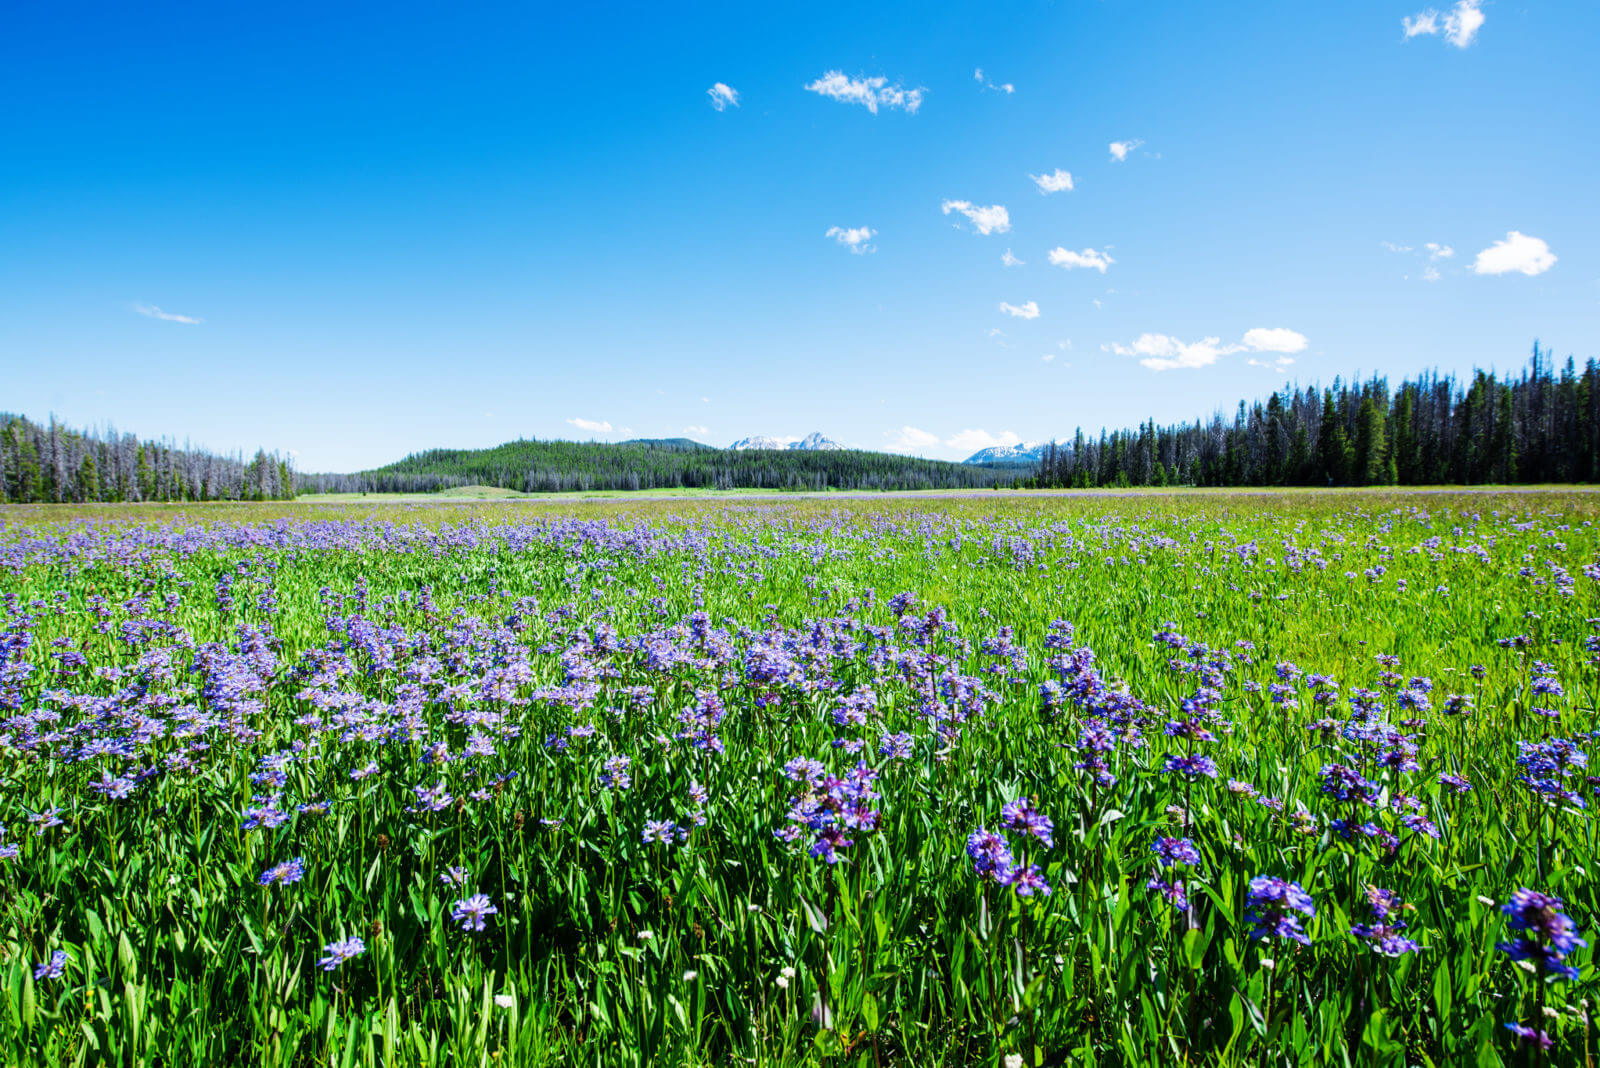 Purlple wildflowers in a green meadow with mountains in the distant background